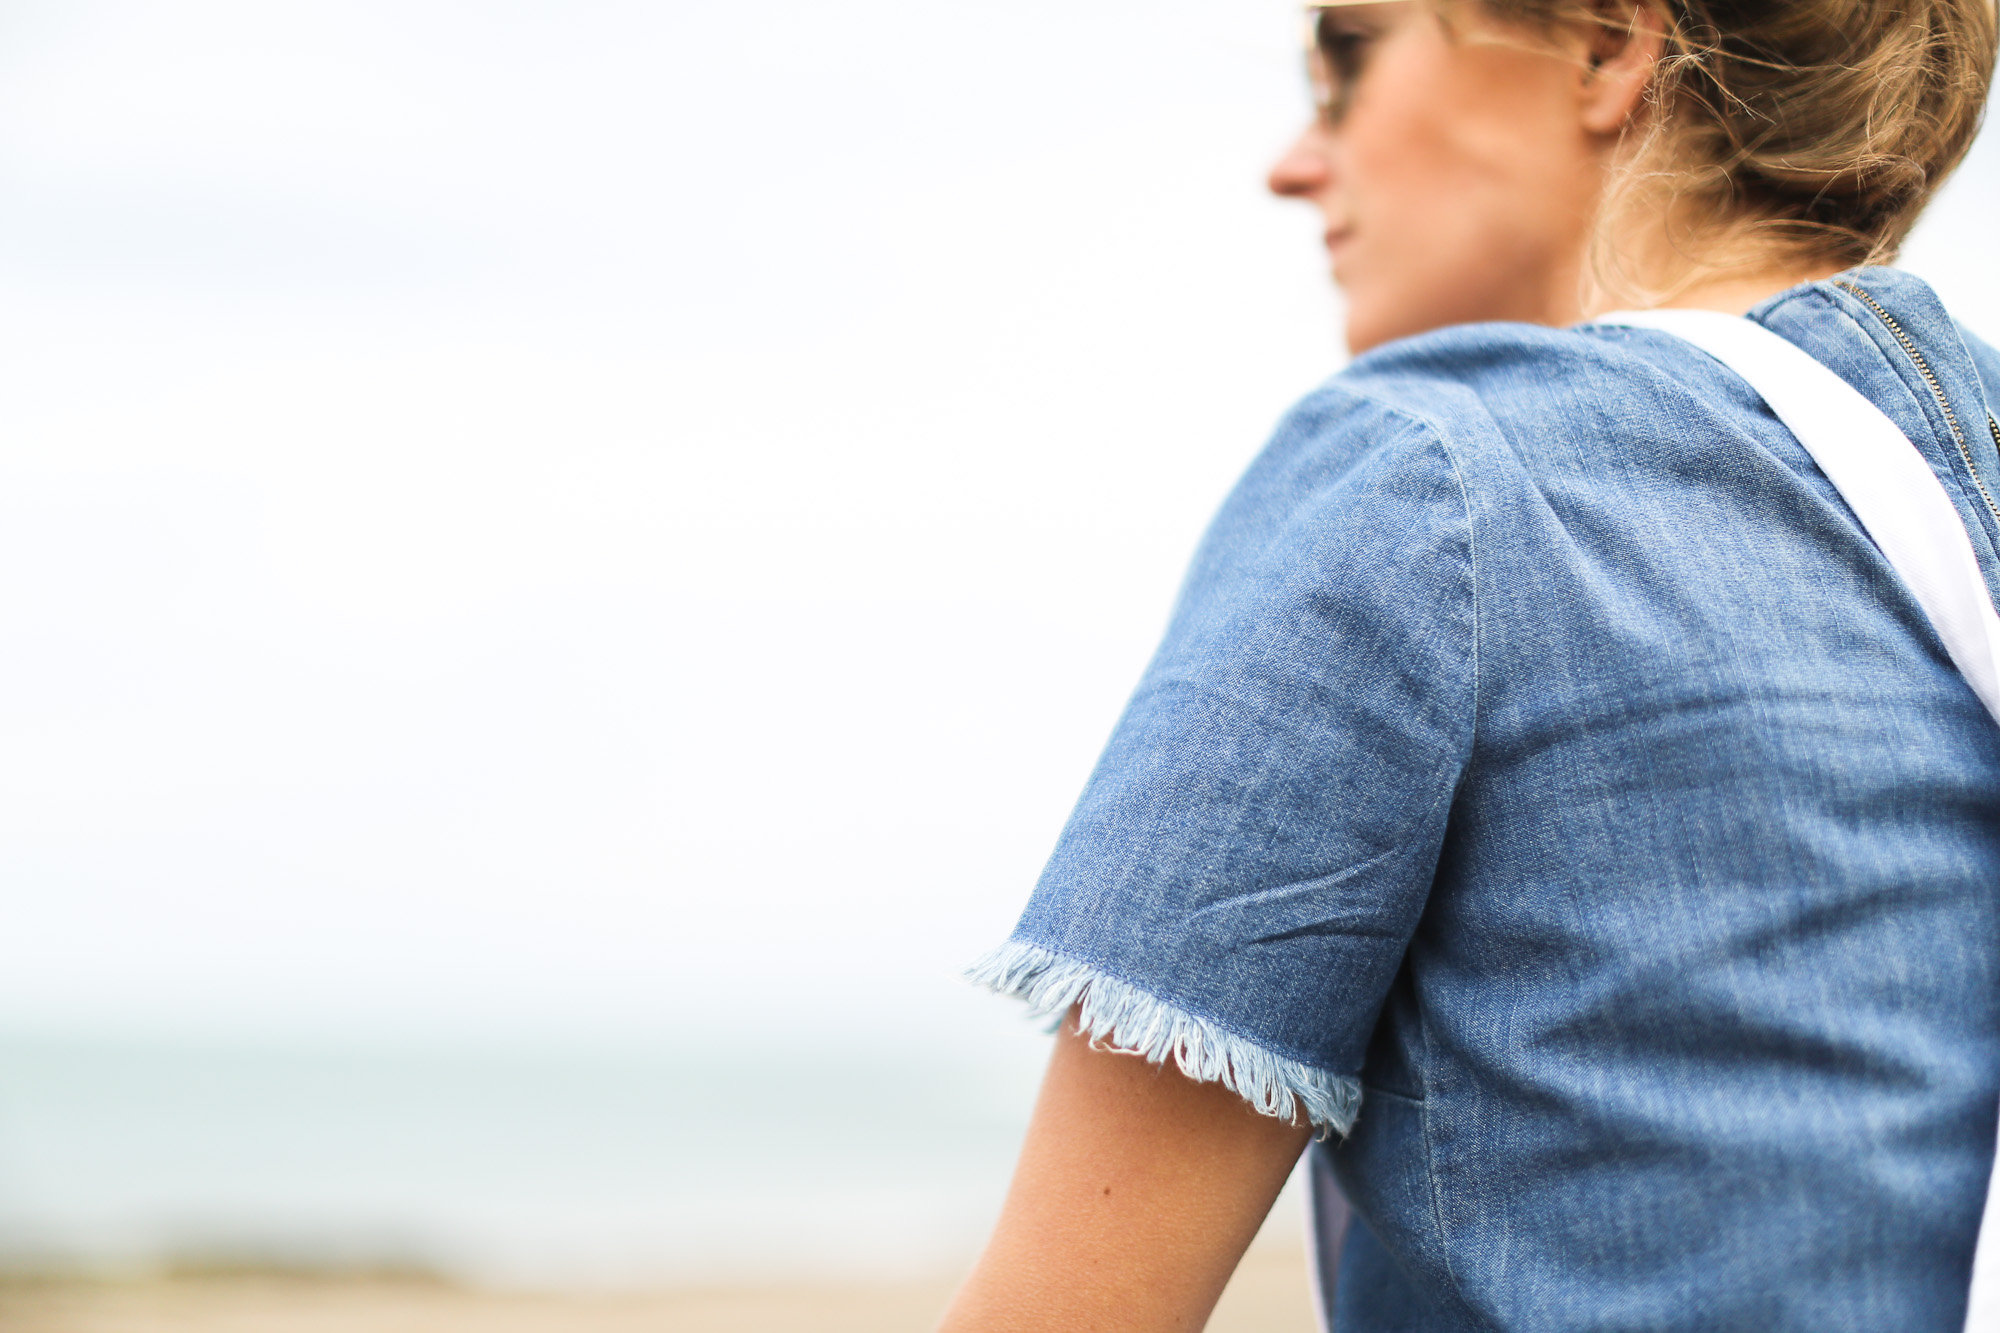 Clochet_streetstyle_blanco_denim_gallery_outfit_onlyforfans-2